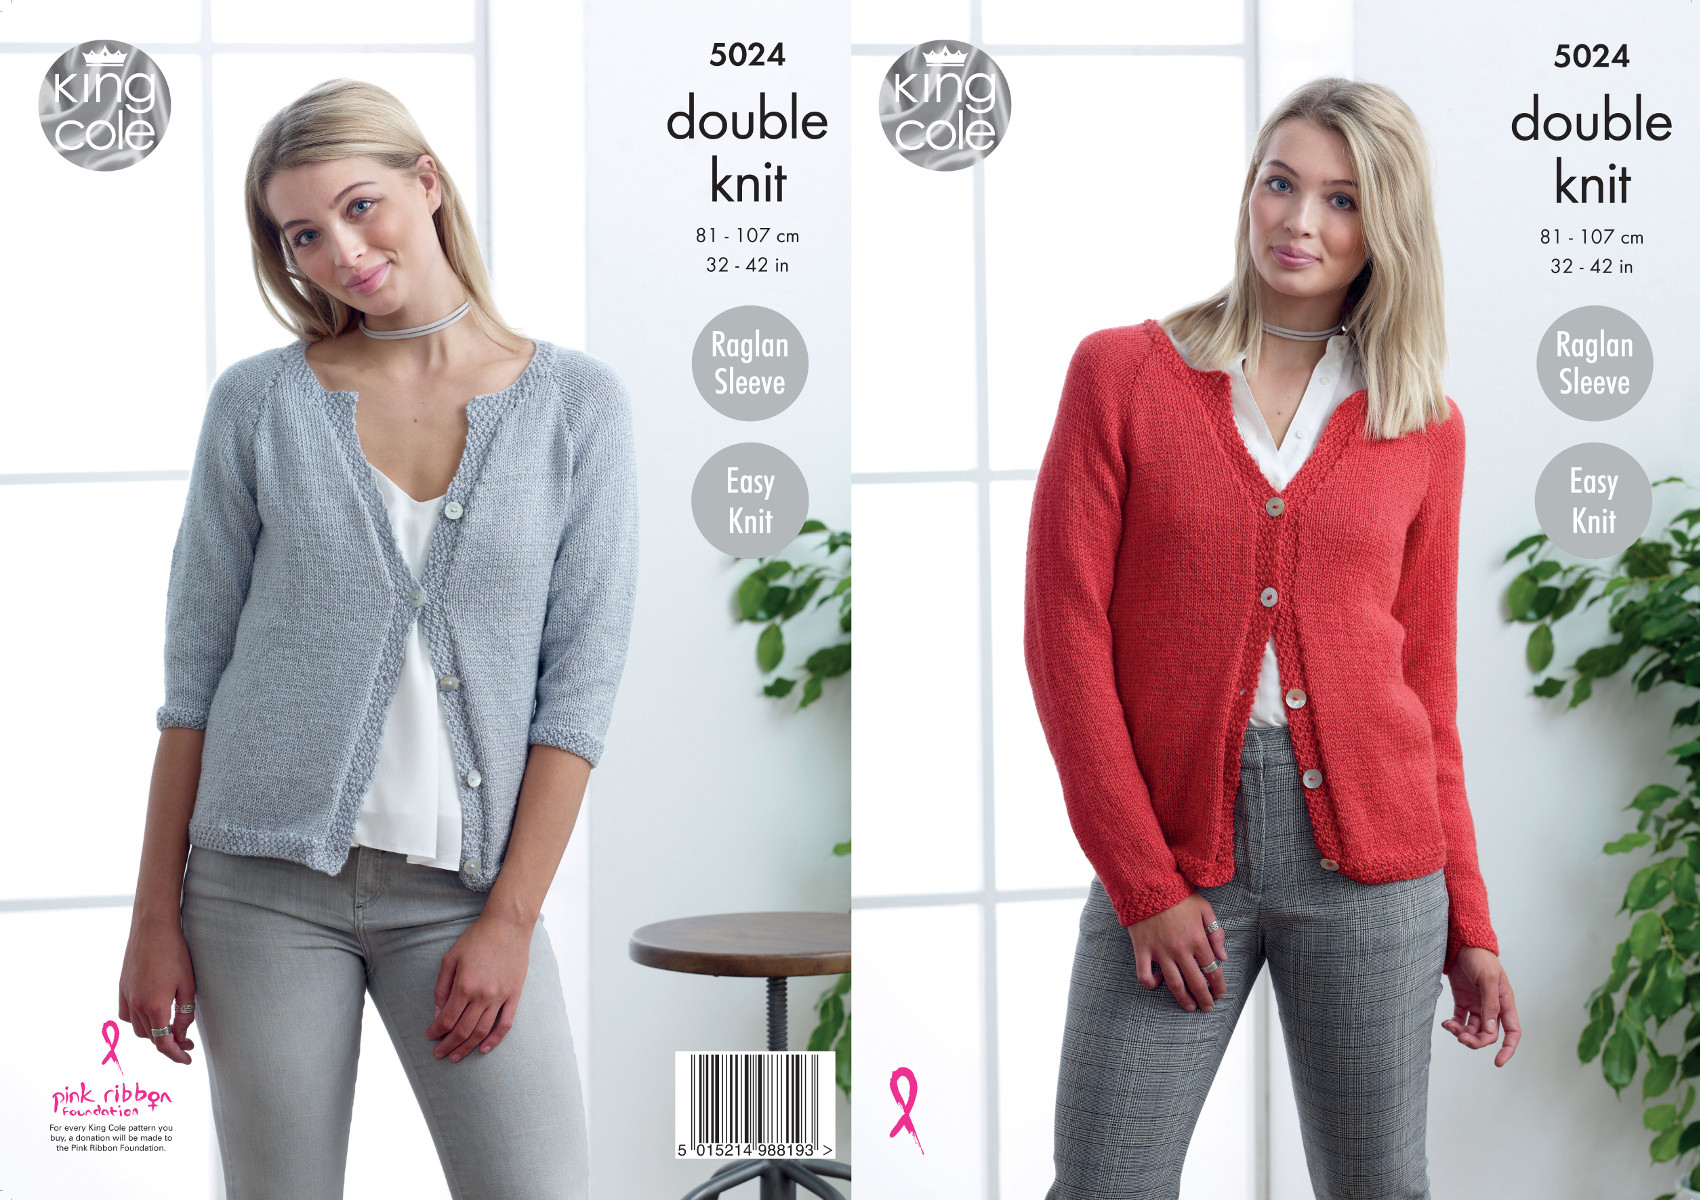 5bffb3d8b648 Details about King Cole Ladies Double Knitting Pattern Long or 3 4 Raglan  Sleeve Cardigan 5024